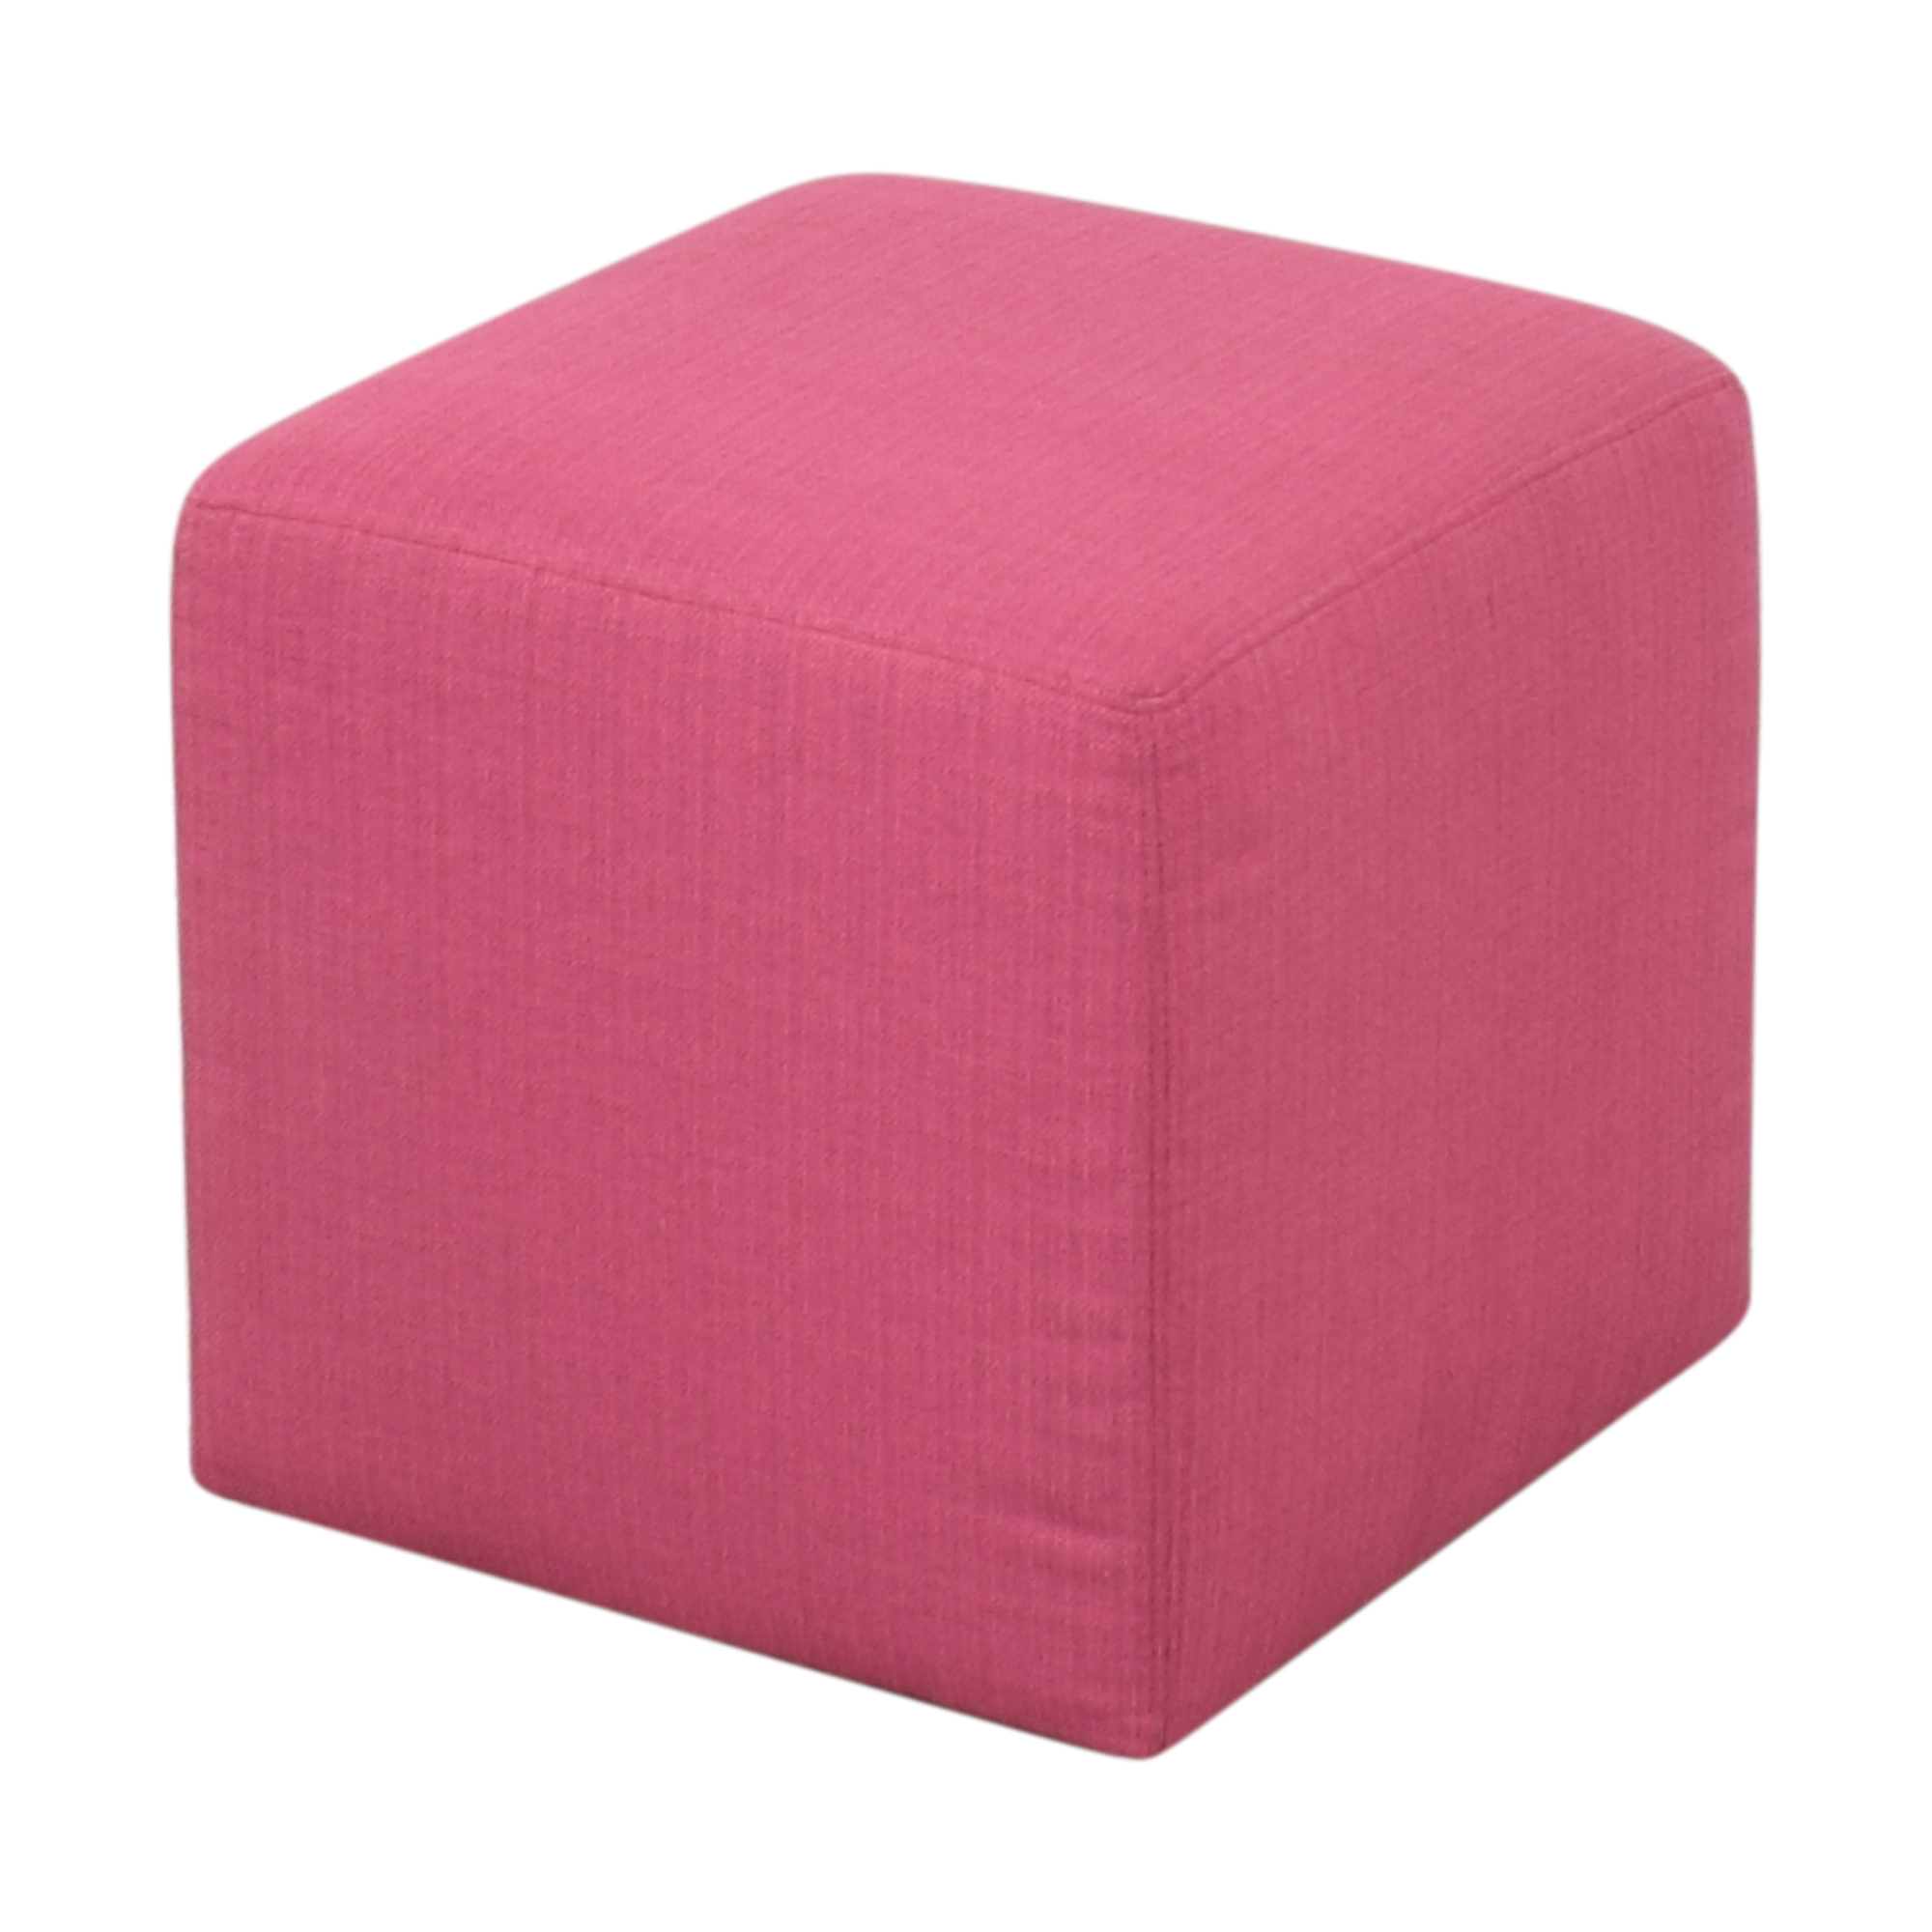 ABC Carpet & Home Square Upholstered Ottoman discount